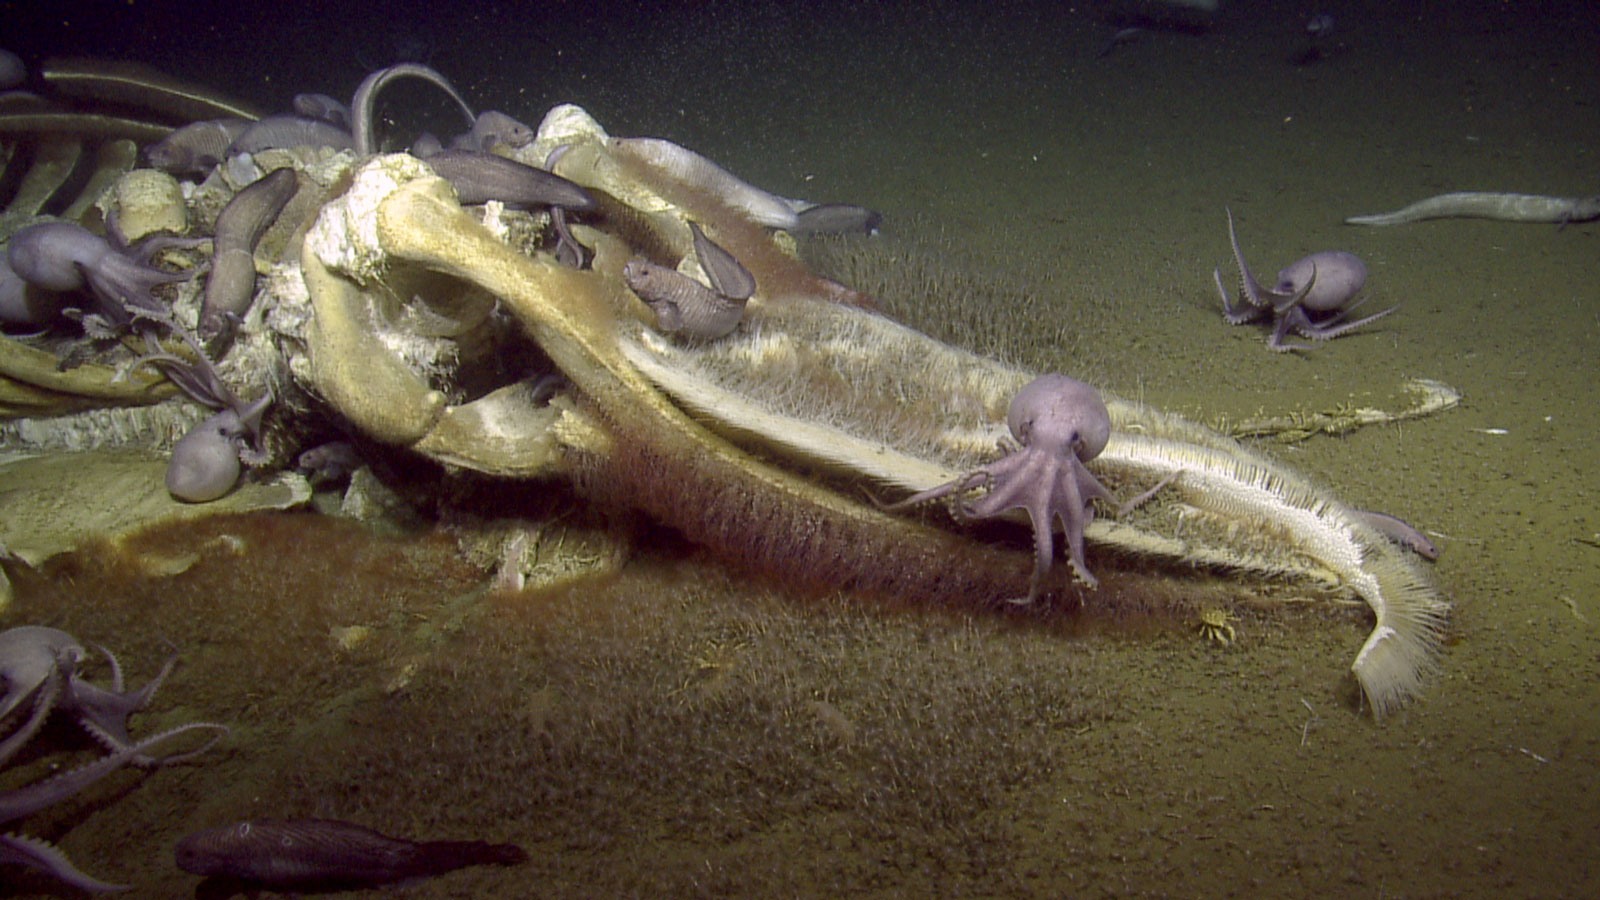 A decaying whale on the sea floor covered in different organisms.